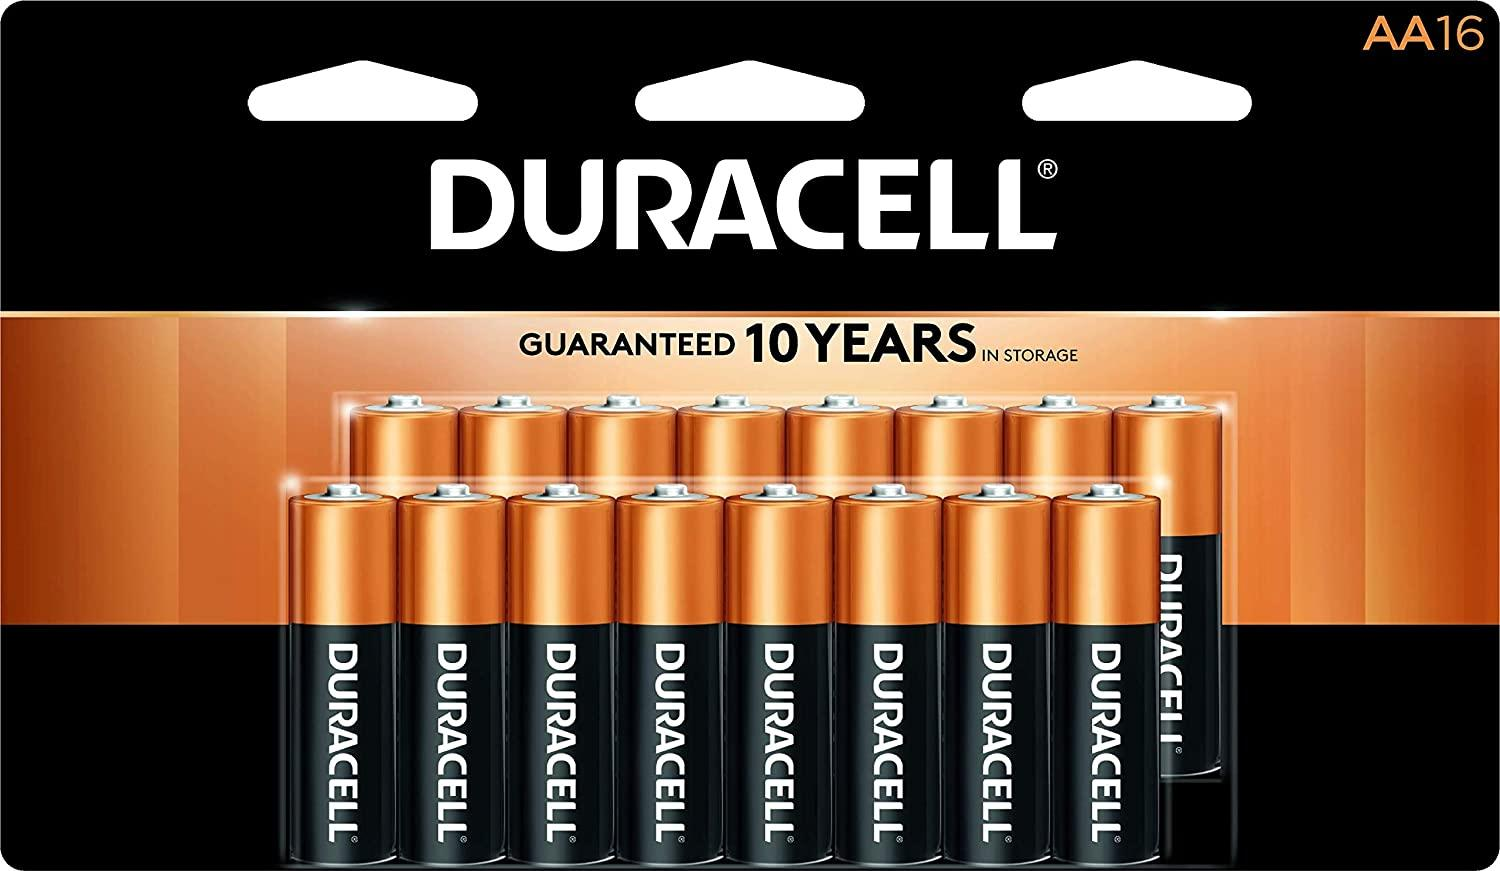 16 Duracell AA or AAA Alkaline Batteries with $14.98 Rewards for $14.99 Shipped